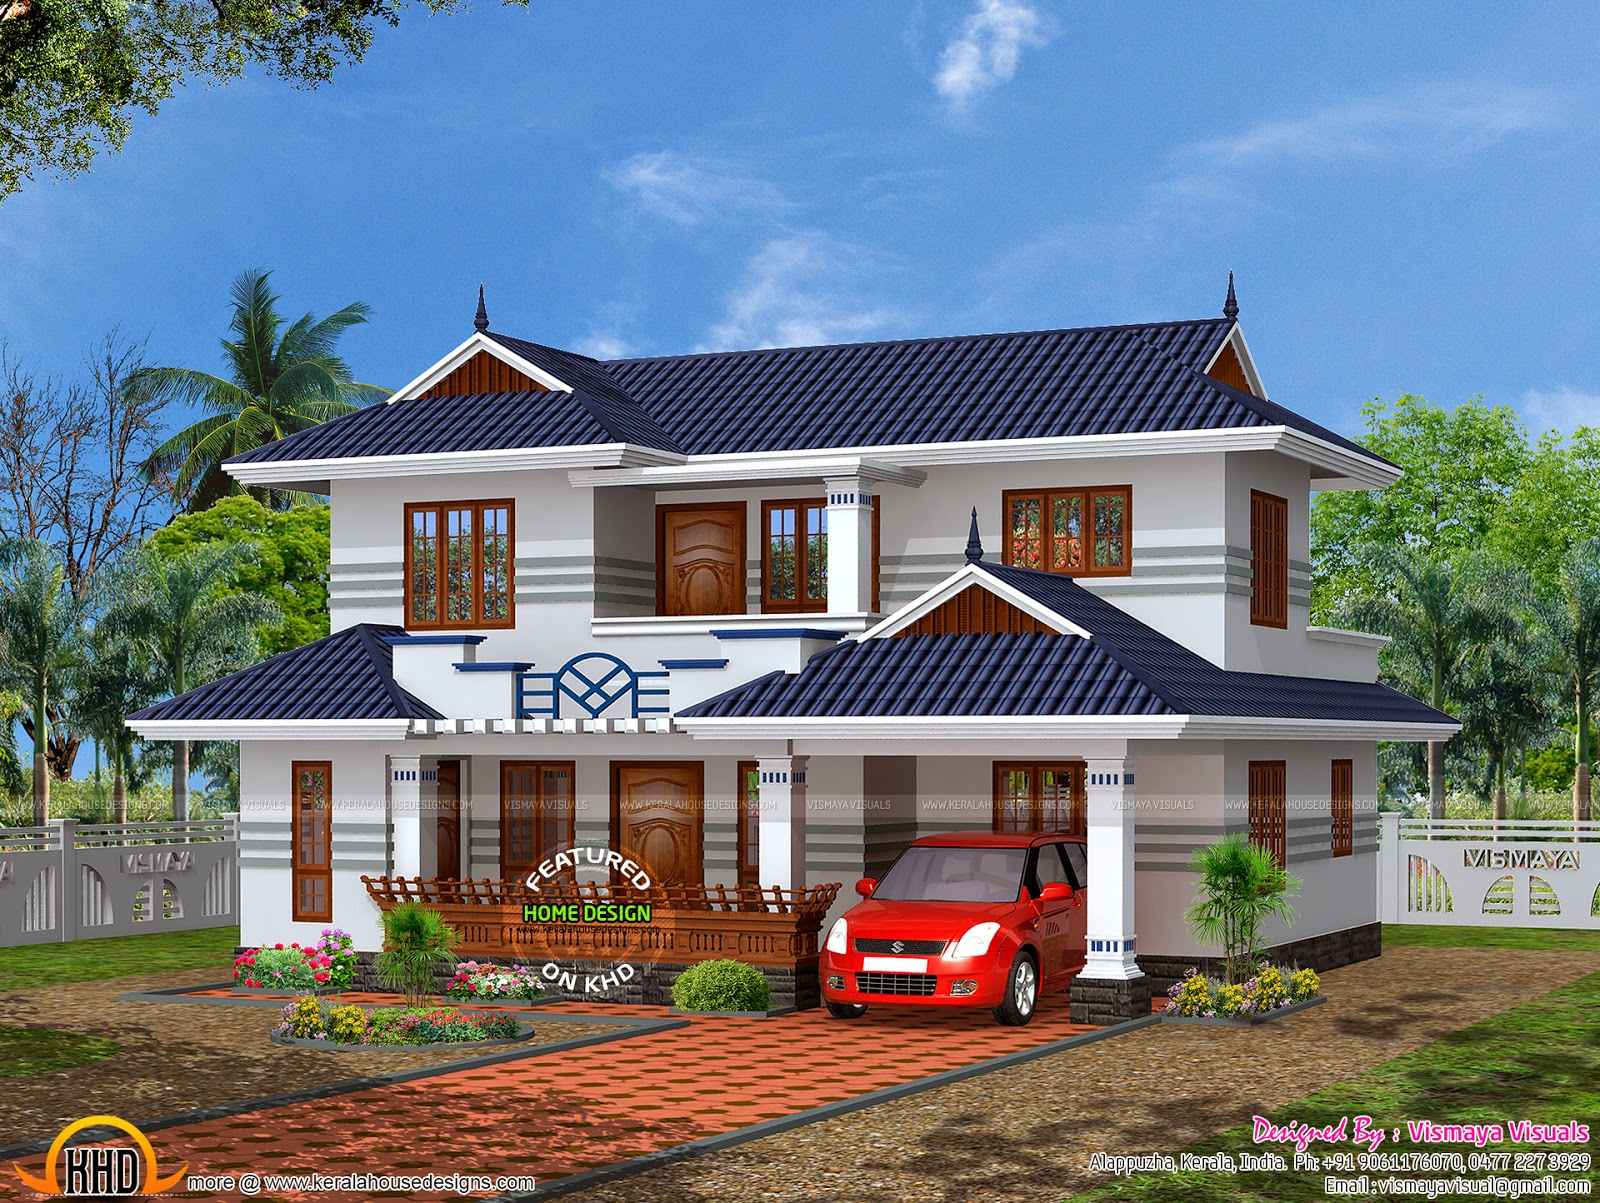 Typical kerala house plan kerala home design and floor plans for Housing plans kerala